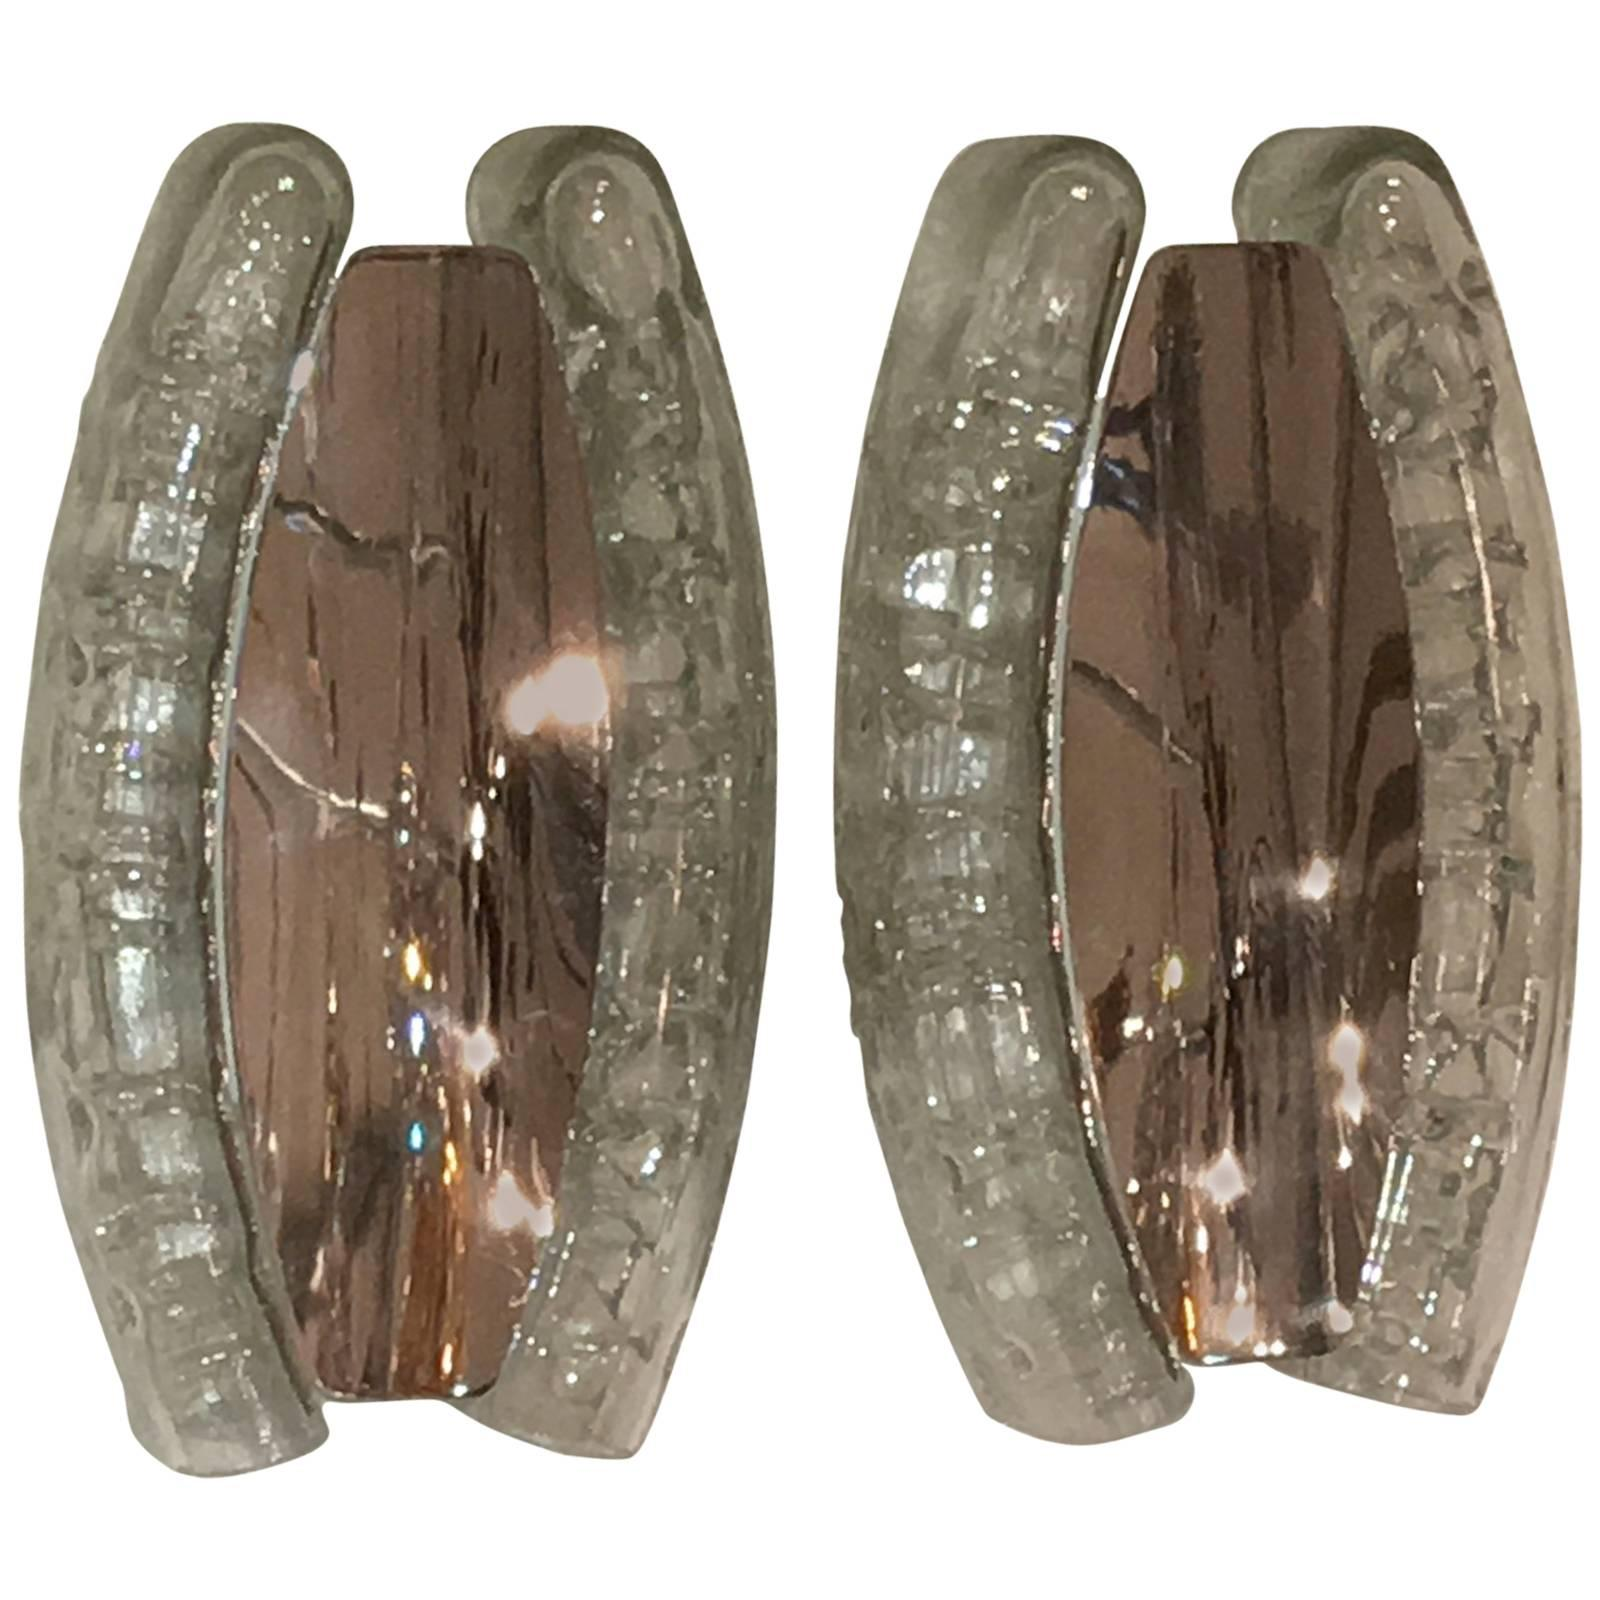 Pair of Chrome and Glass Sconces by Doria Leuchten, Germany